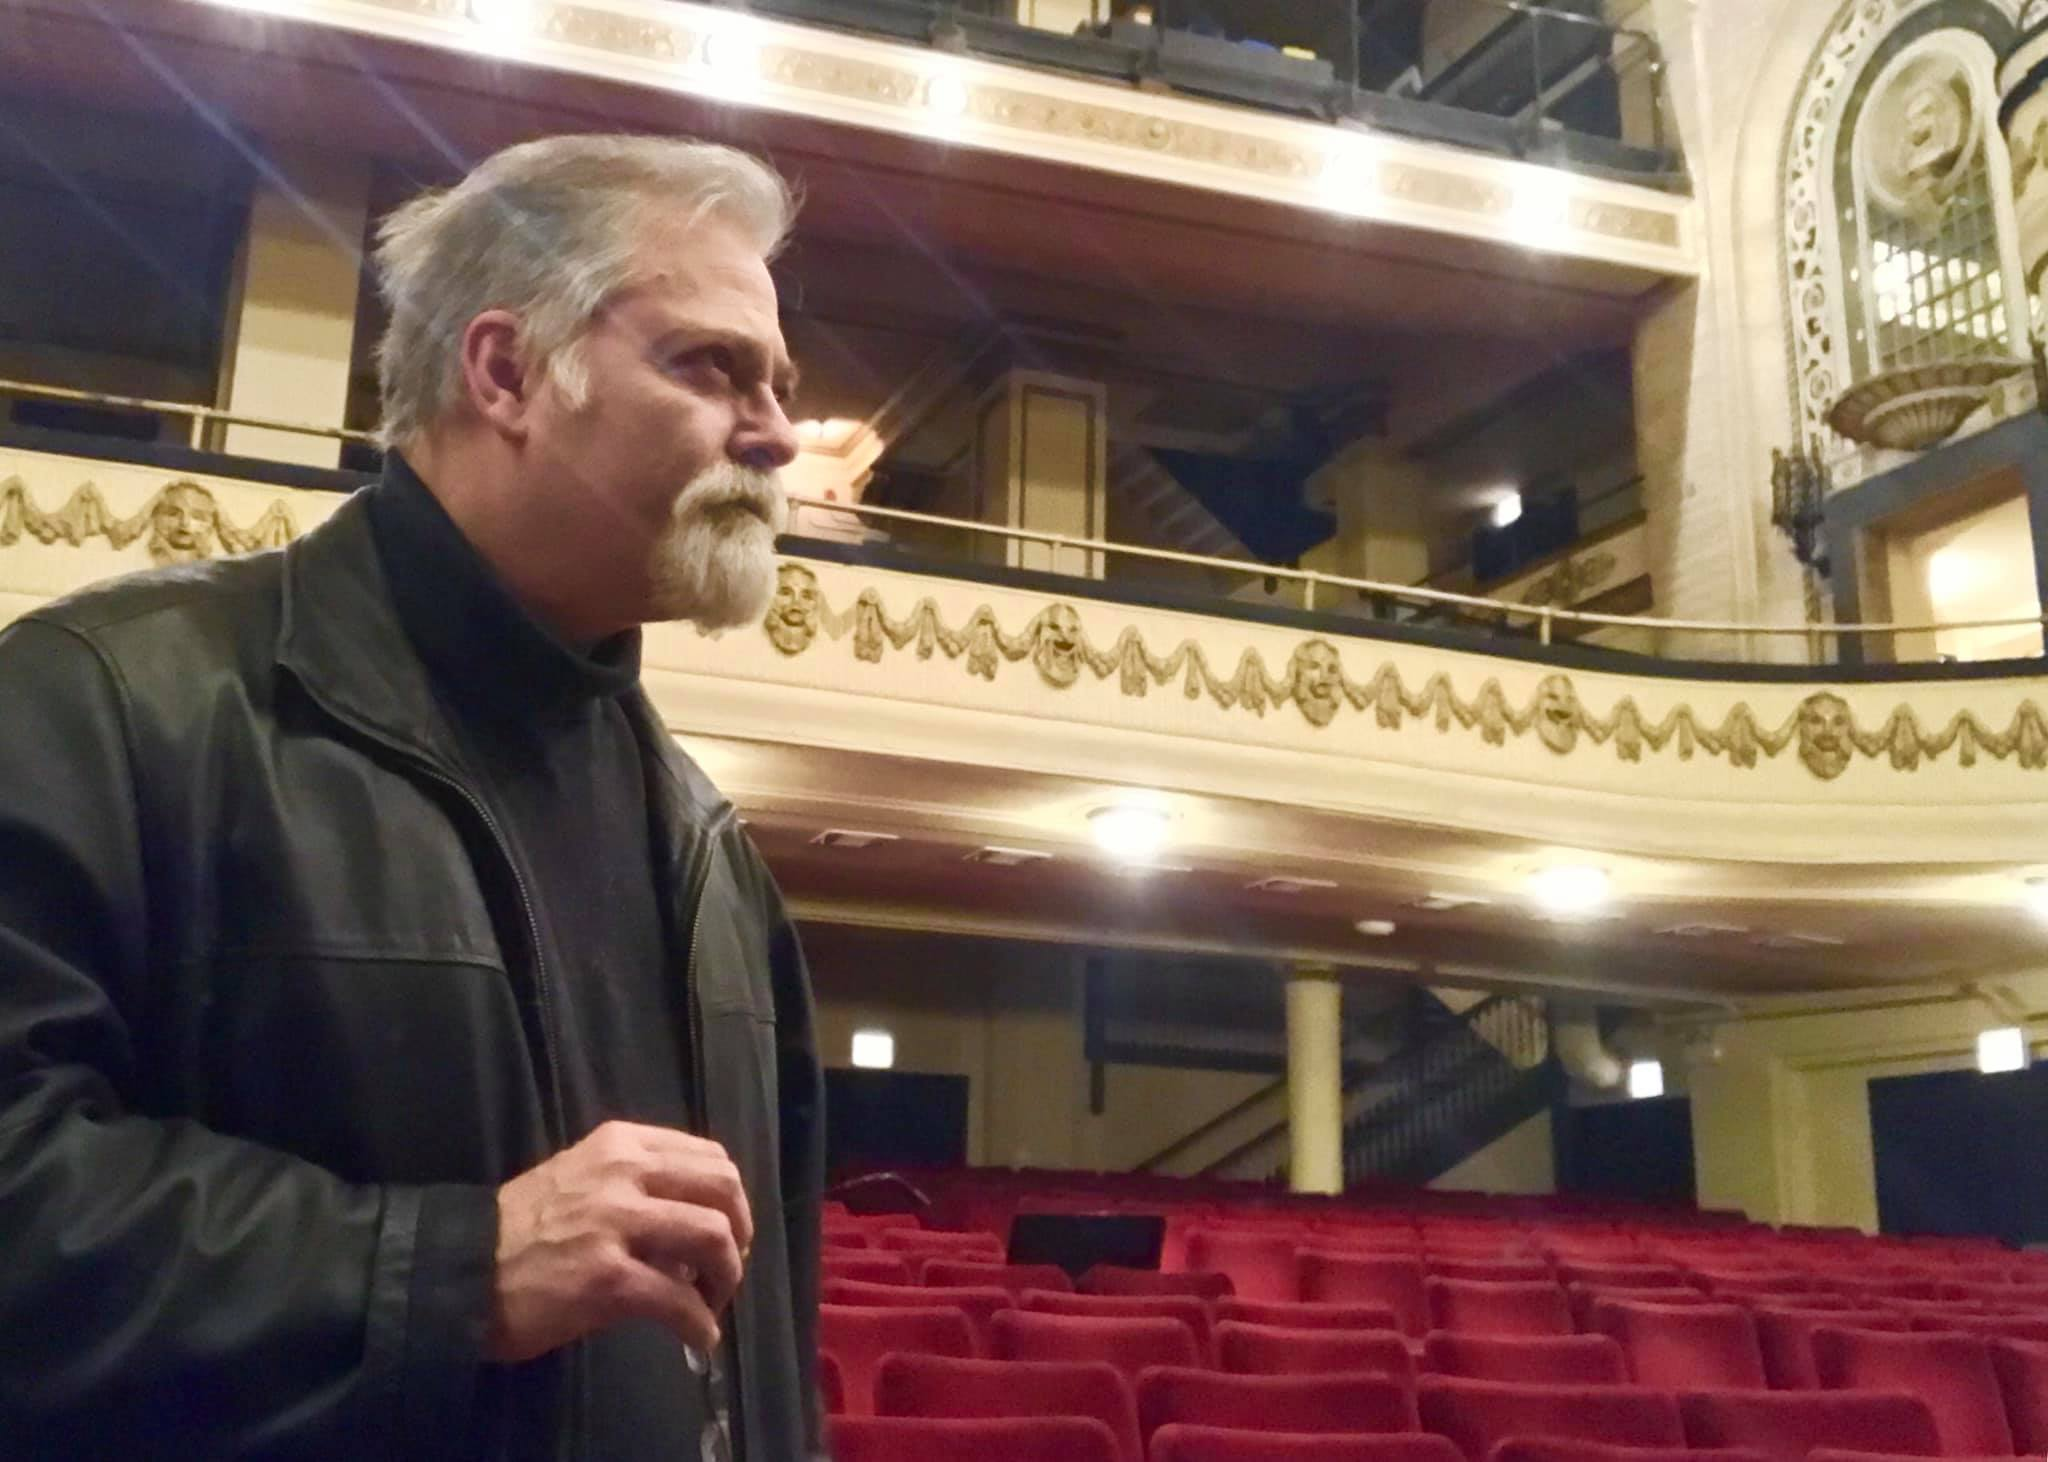 Daron giving a masterclass at the Studebaker Theater in Chicago for the Chicago College of Performing Arts.